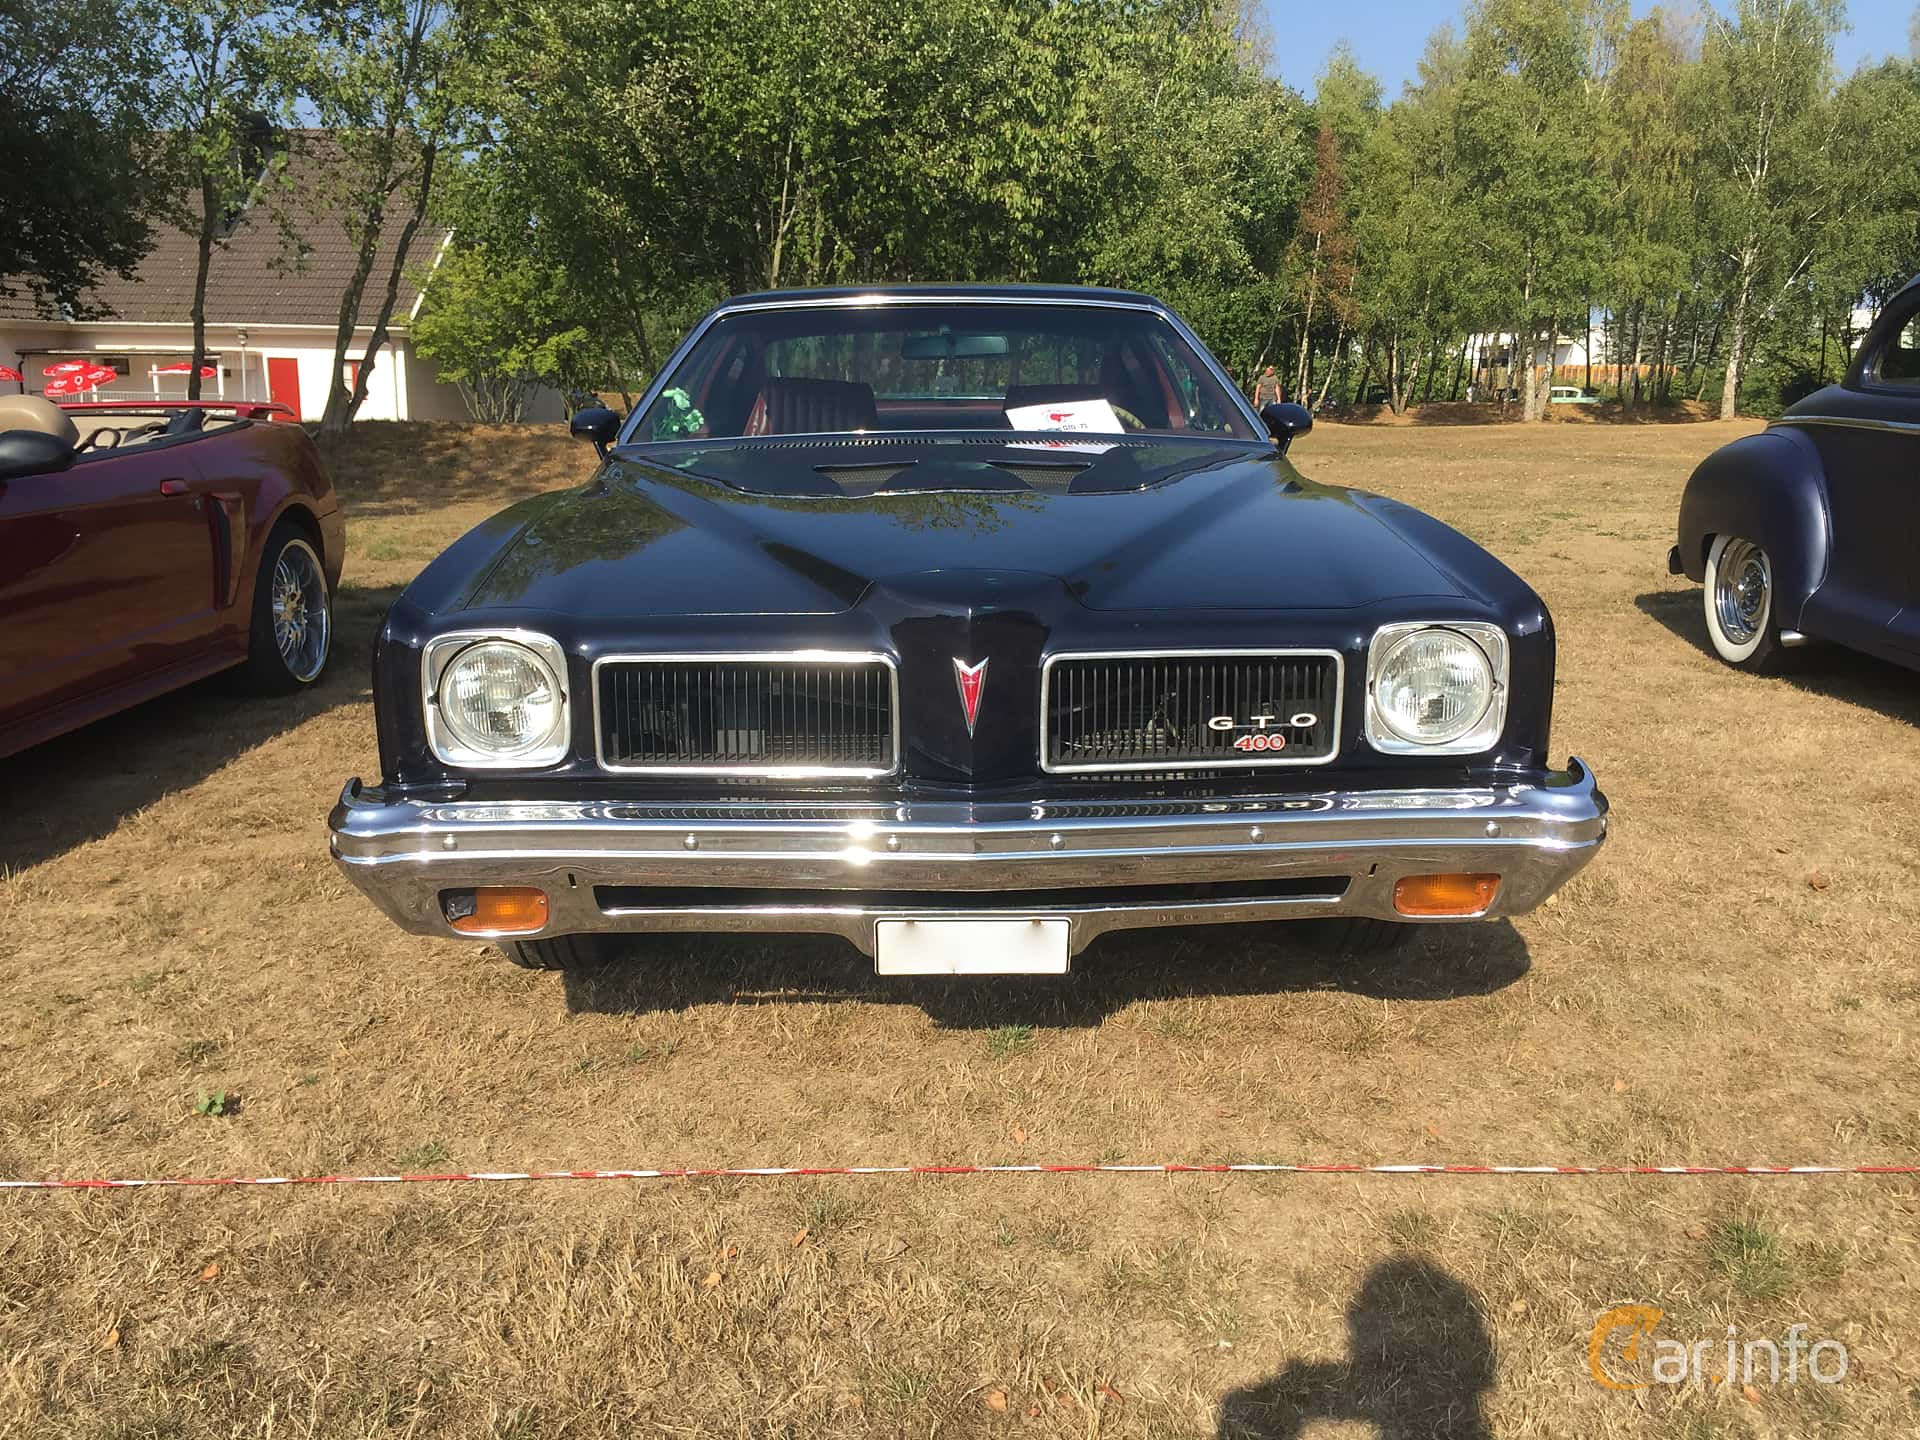 Pontiac LeMans GTO Coupé 6.6 V8 Automatic, 233hp, 1973 at Eddys bilträff Augusti 2018